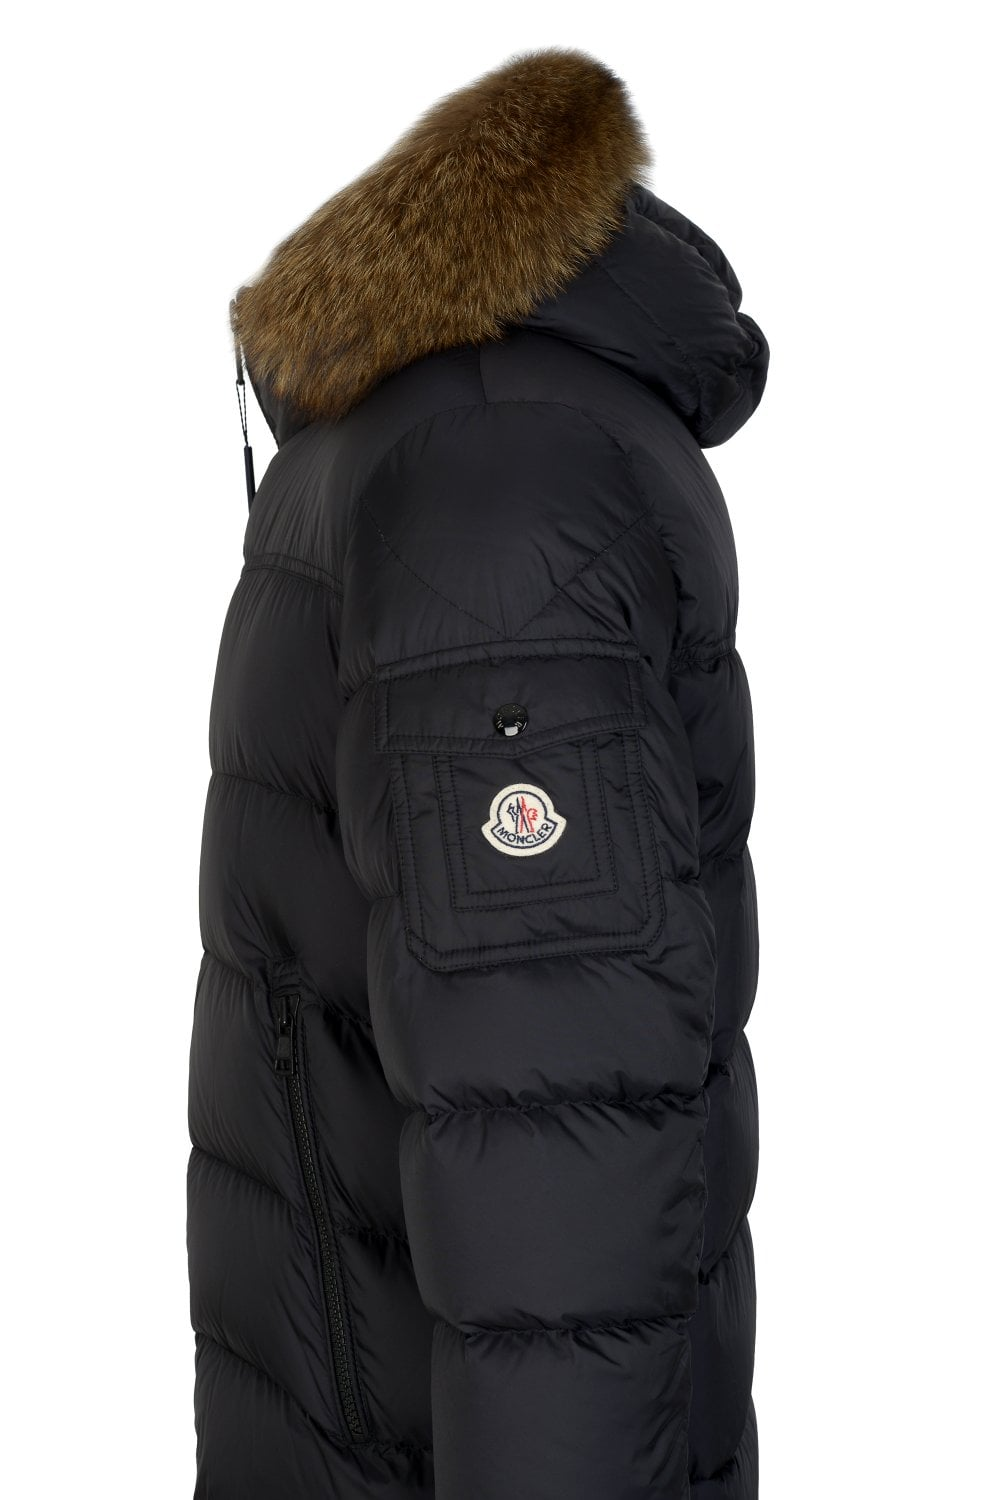 3e0c7094a031 MONCLER Moncler Marque Quilted Fur Trim Hooded Jacket - Clothing ...